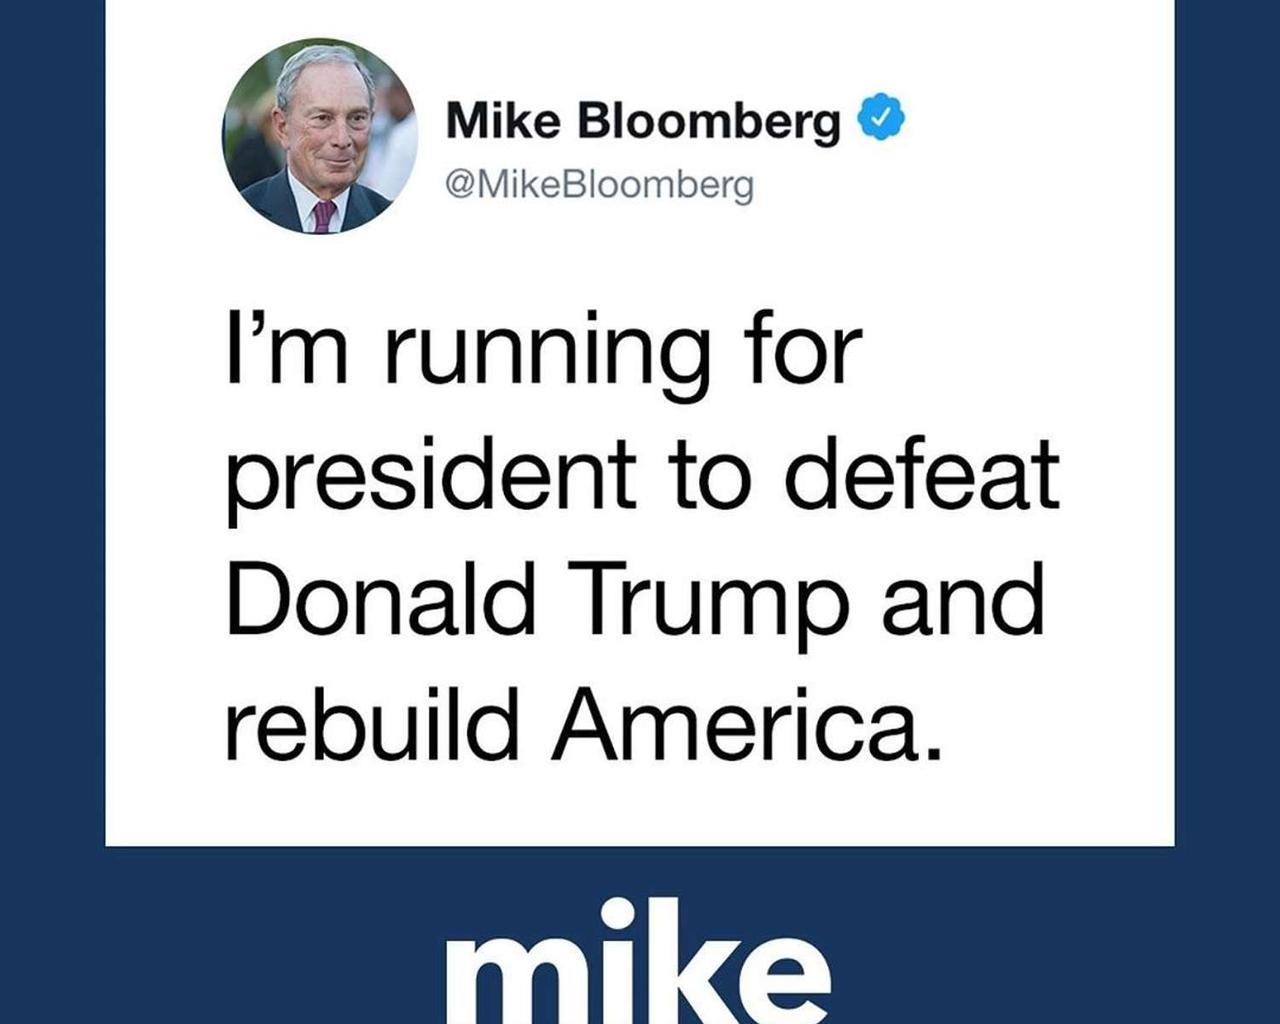 We Can't Afford Four More Years of Trump, Bloomberg Says